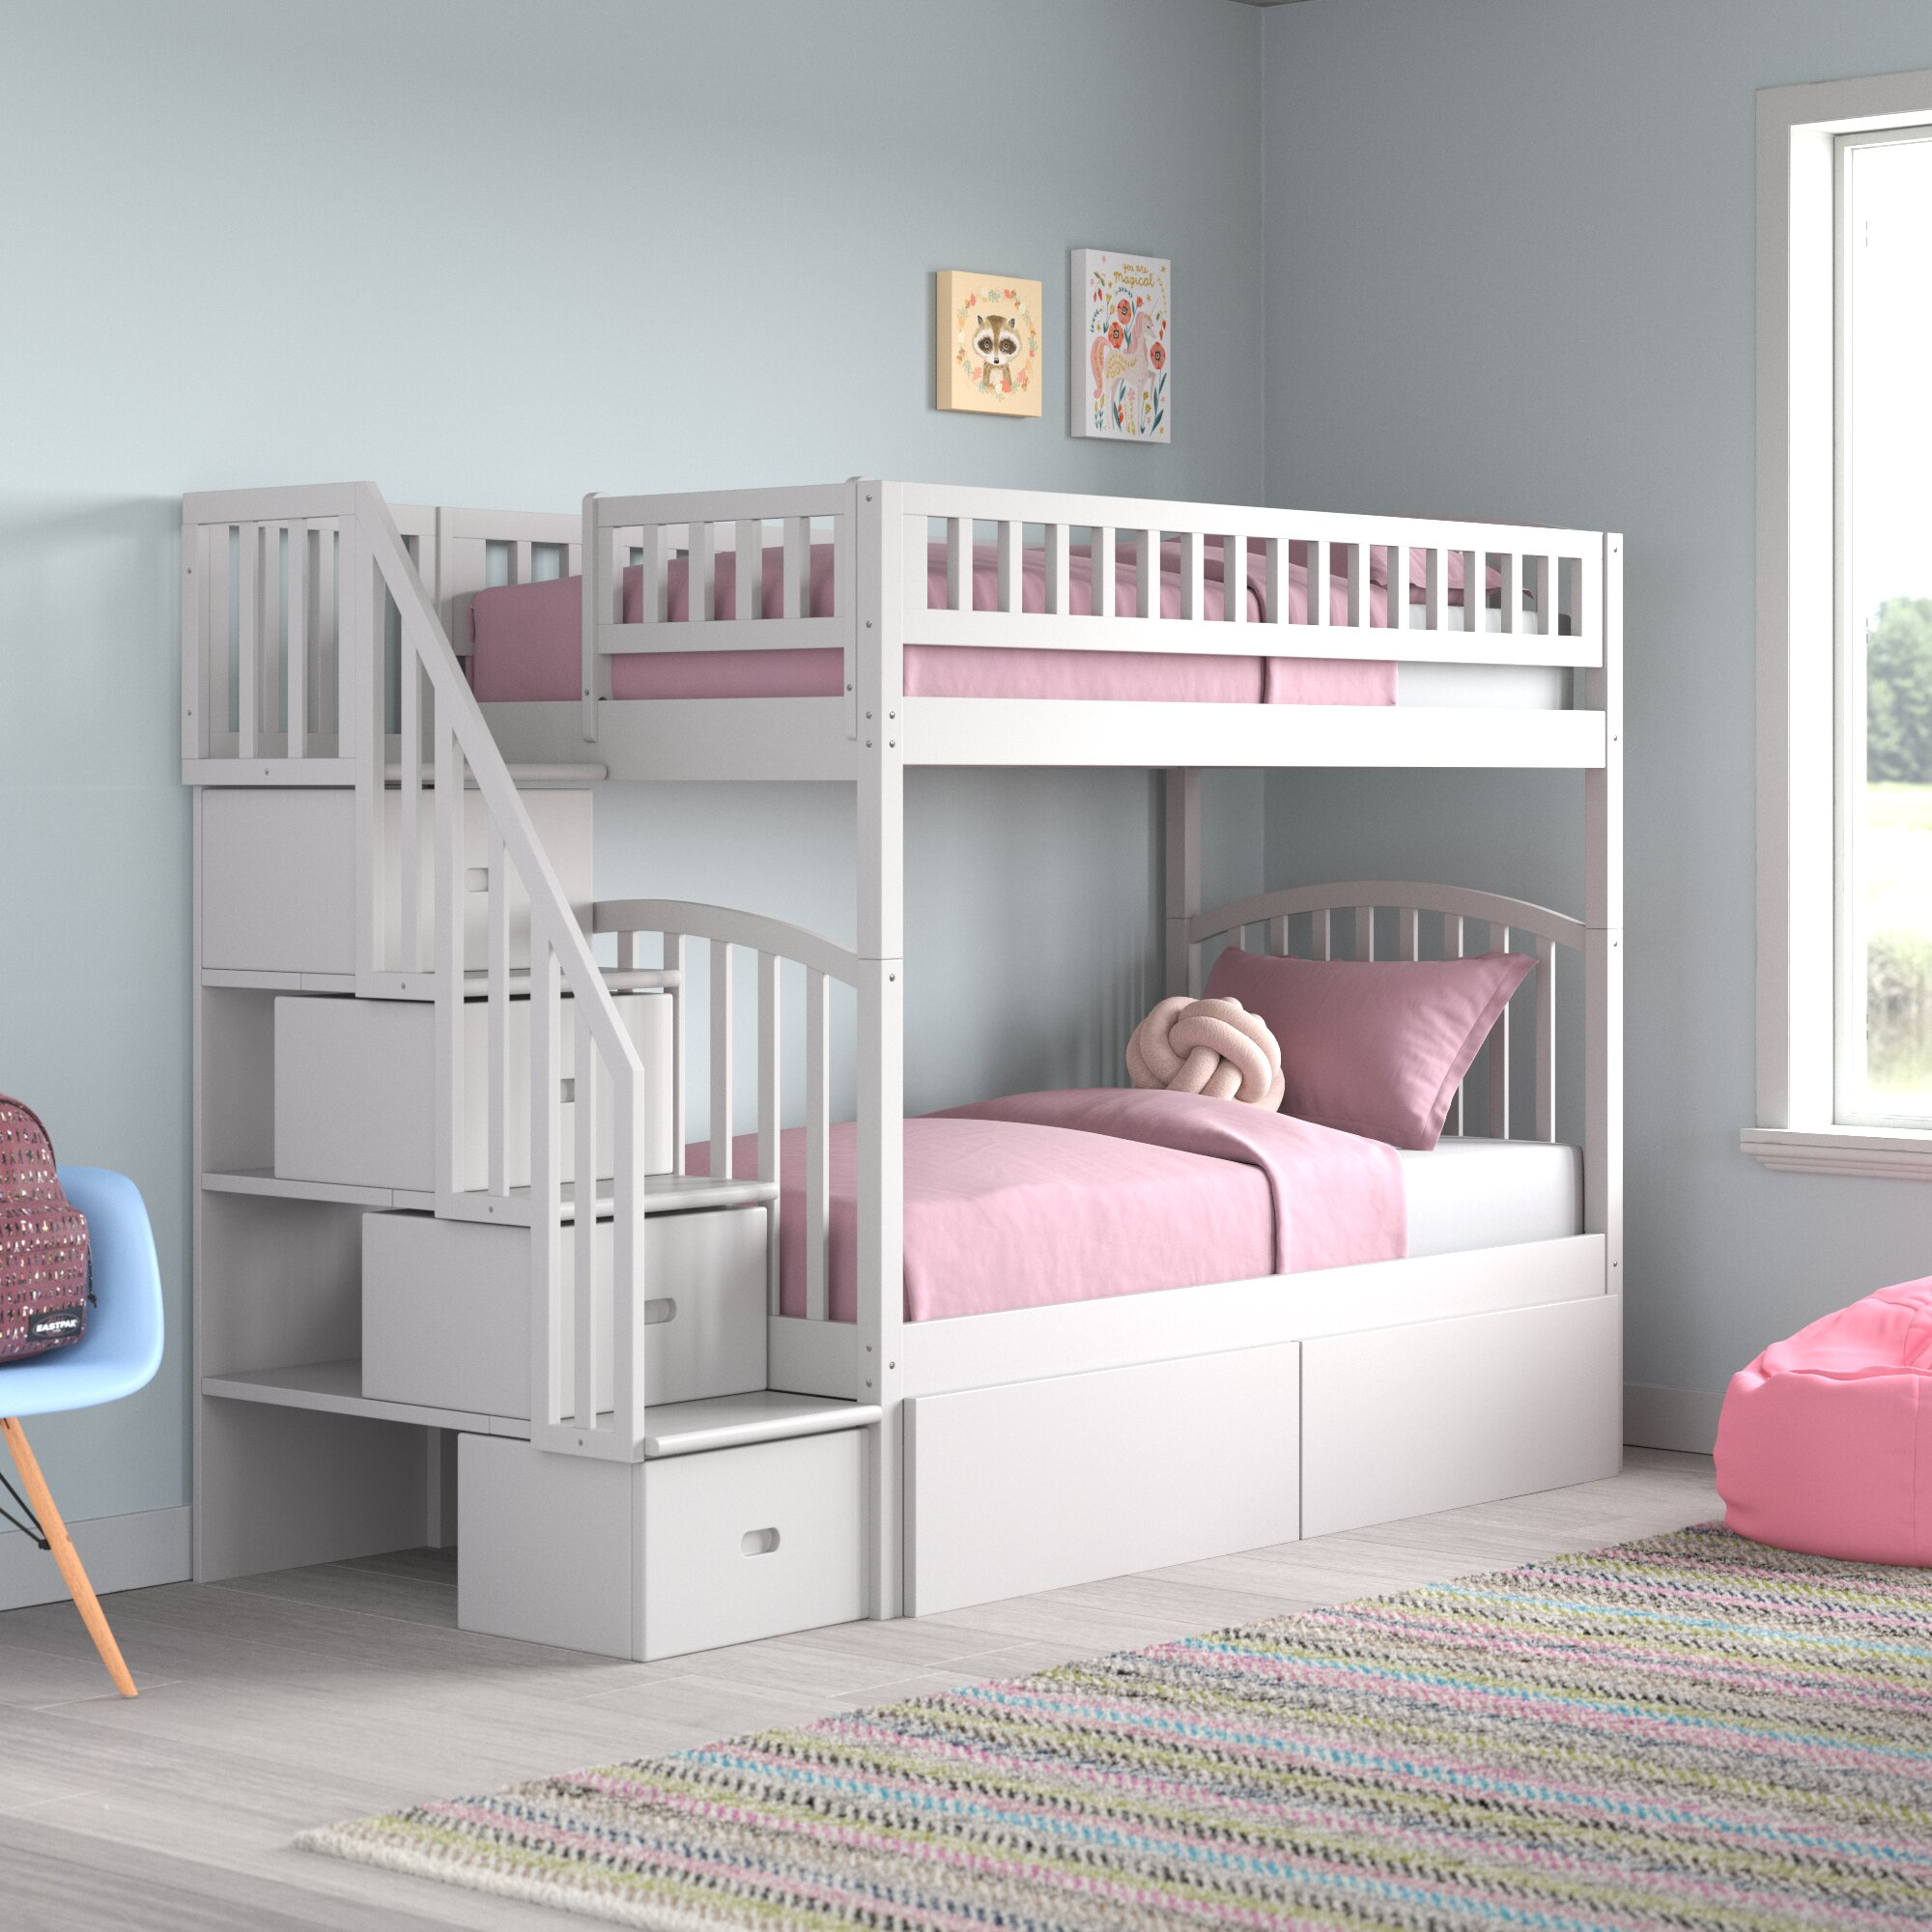 Picture of: Harriet Bee Salem Staircase Twin Over Twin Bunk Bed With Drawers Reviews